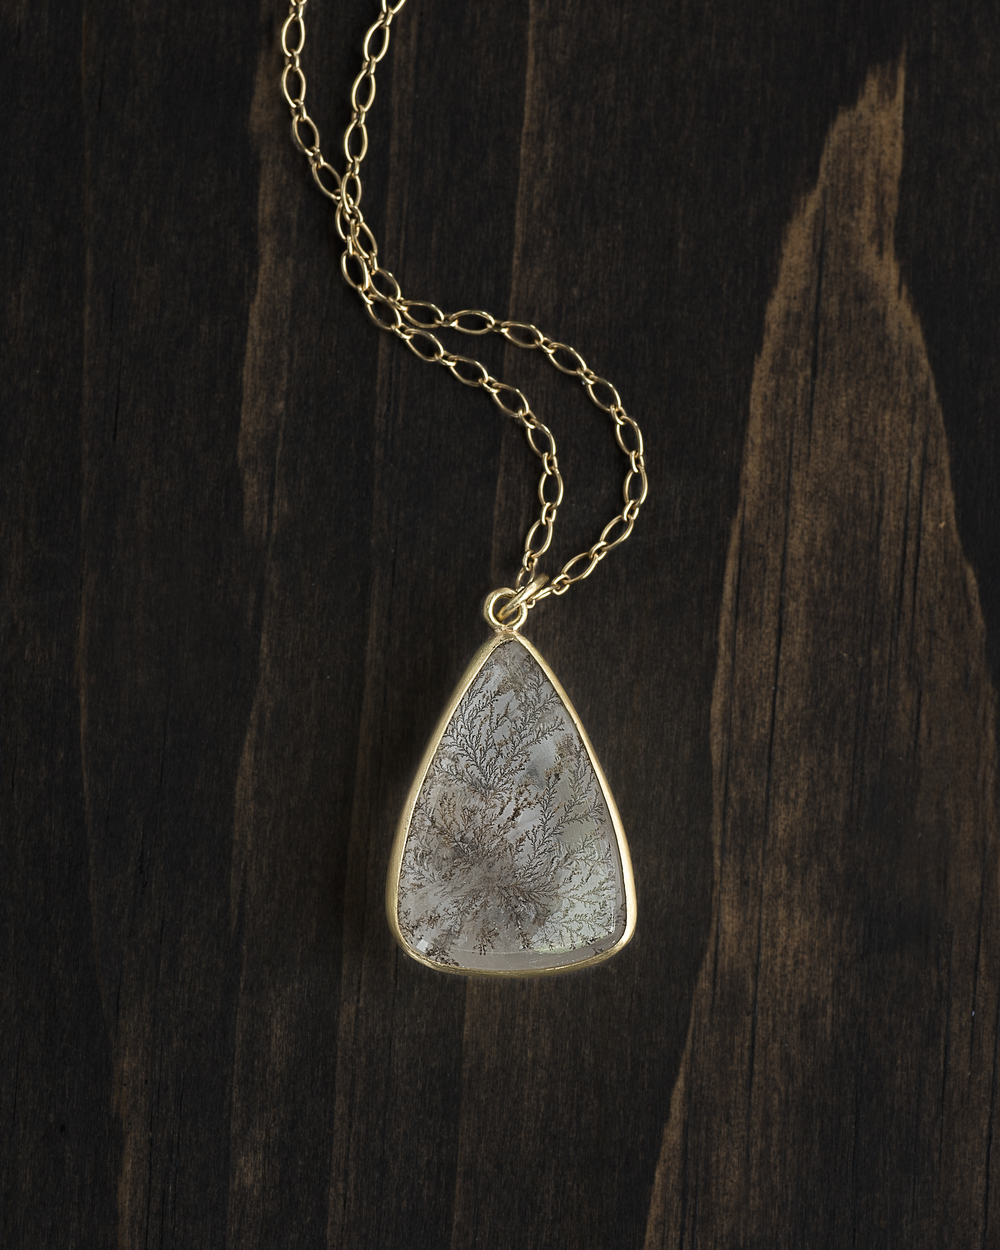 Triangular+Dendritic+Quartz+Pendant+Wood-006_Full_Adobergb.jpg